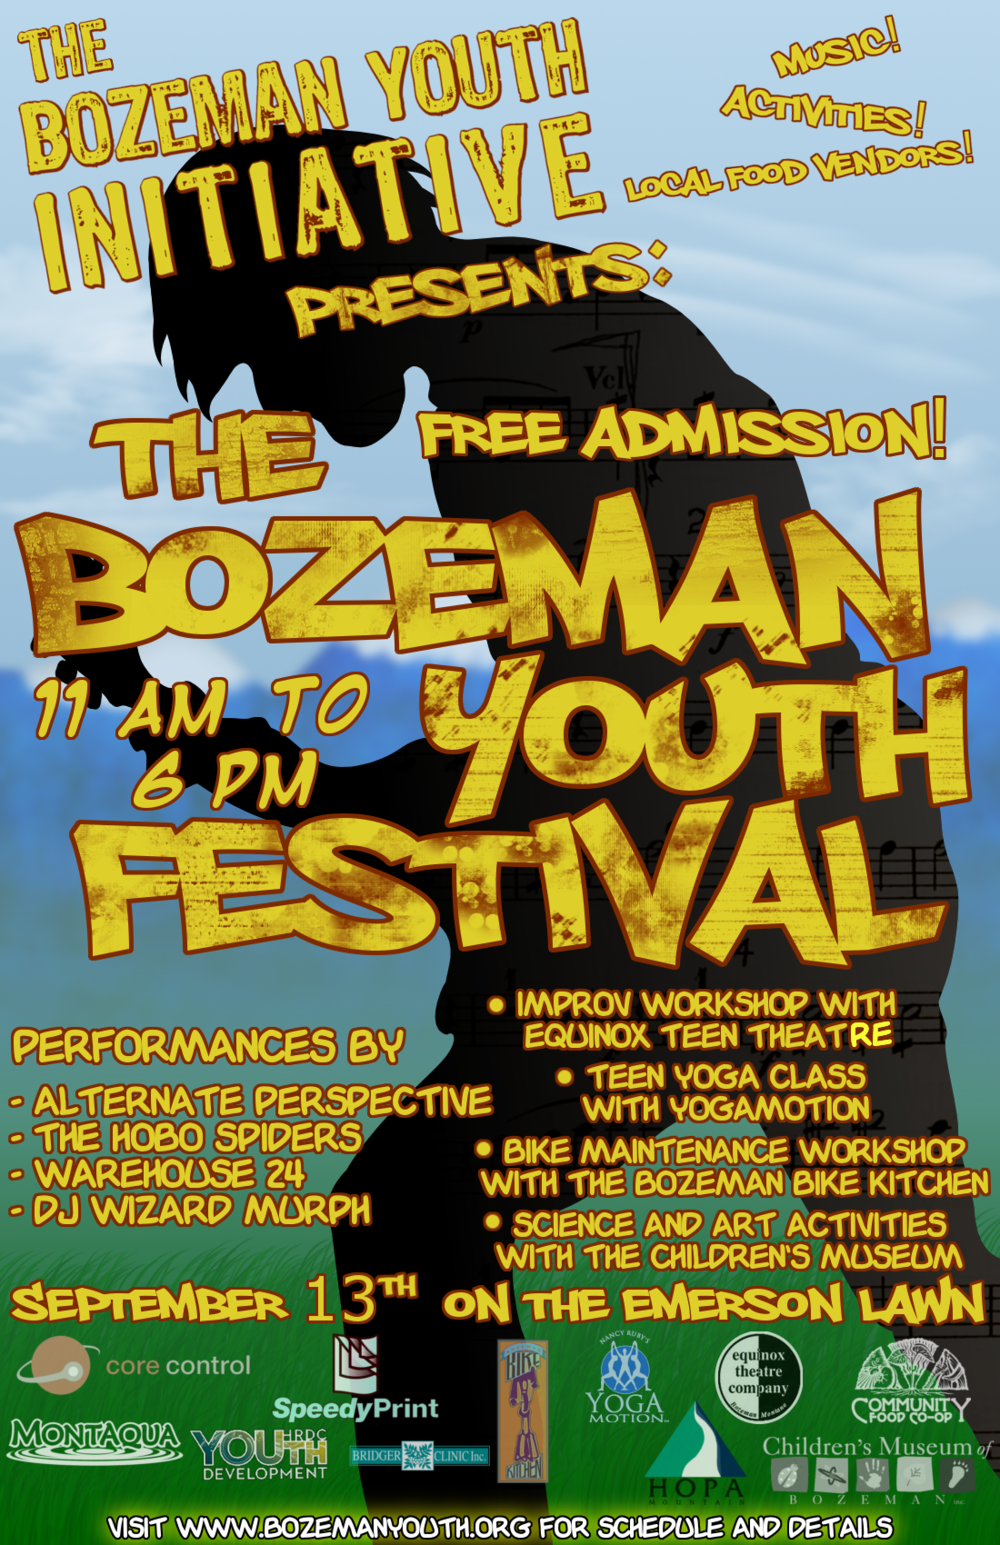 Bozeman Youth Festival, 2009. Poster by Dacotah Stordahl.